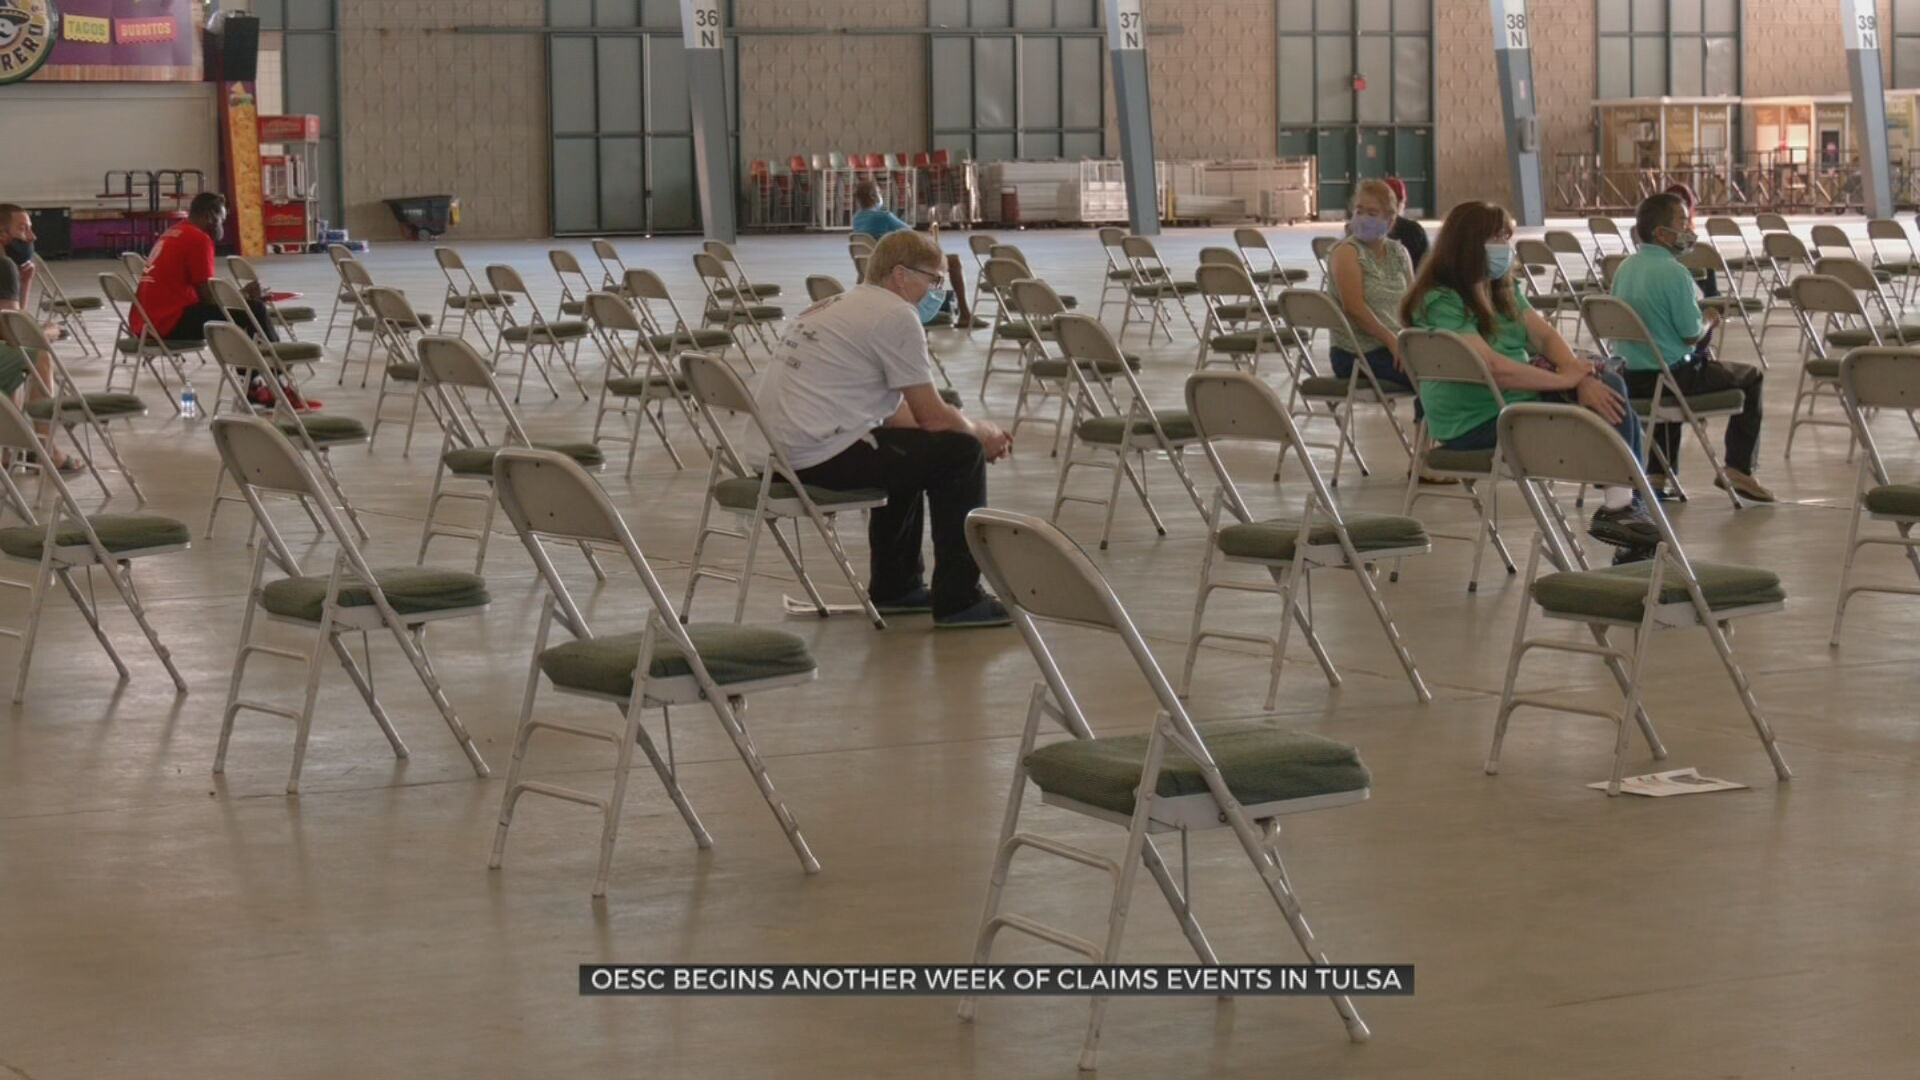 People Facing Unemployment Issues Seek Answers At OESC Meetings In Tulsa